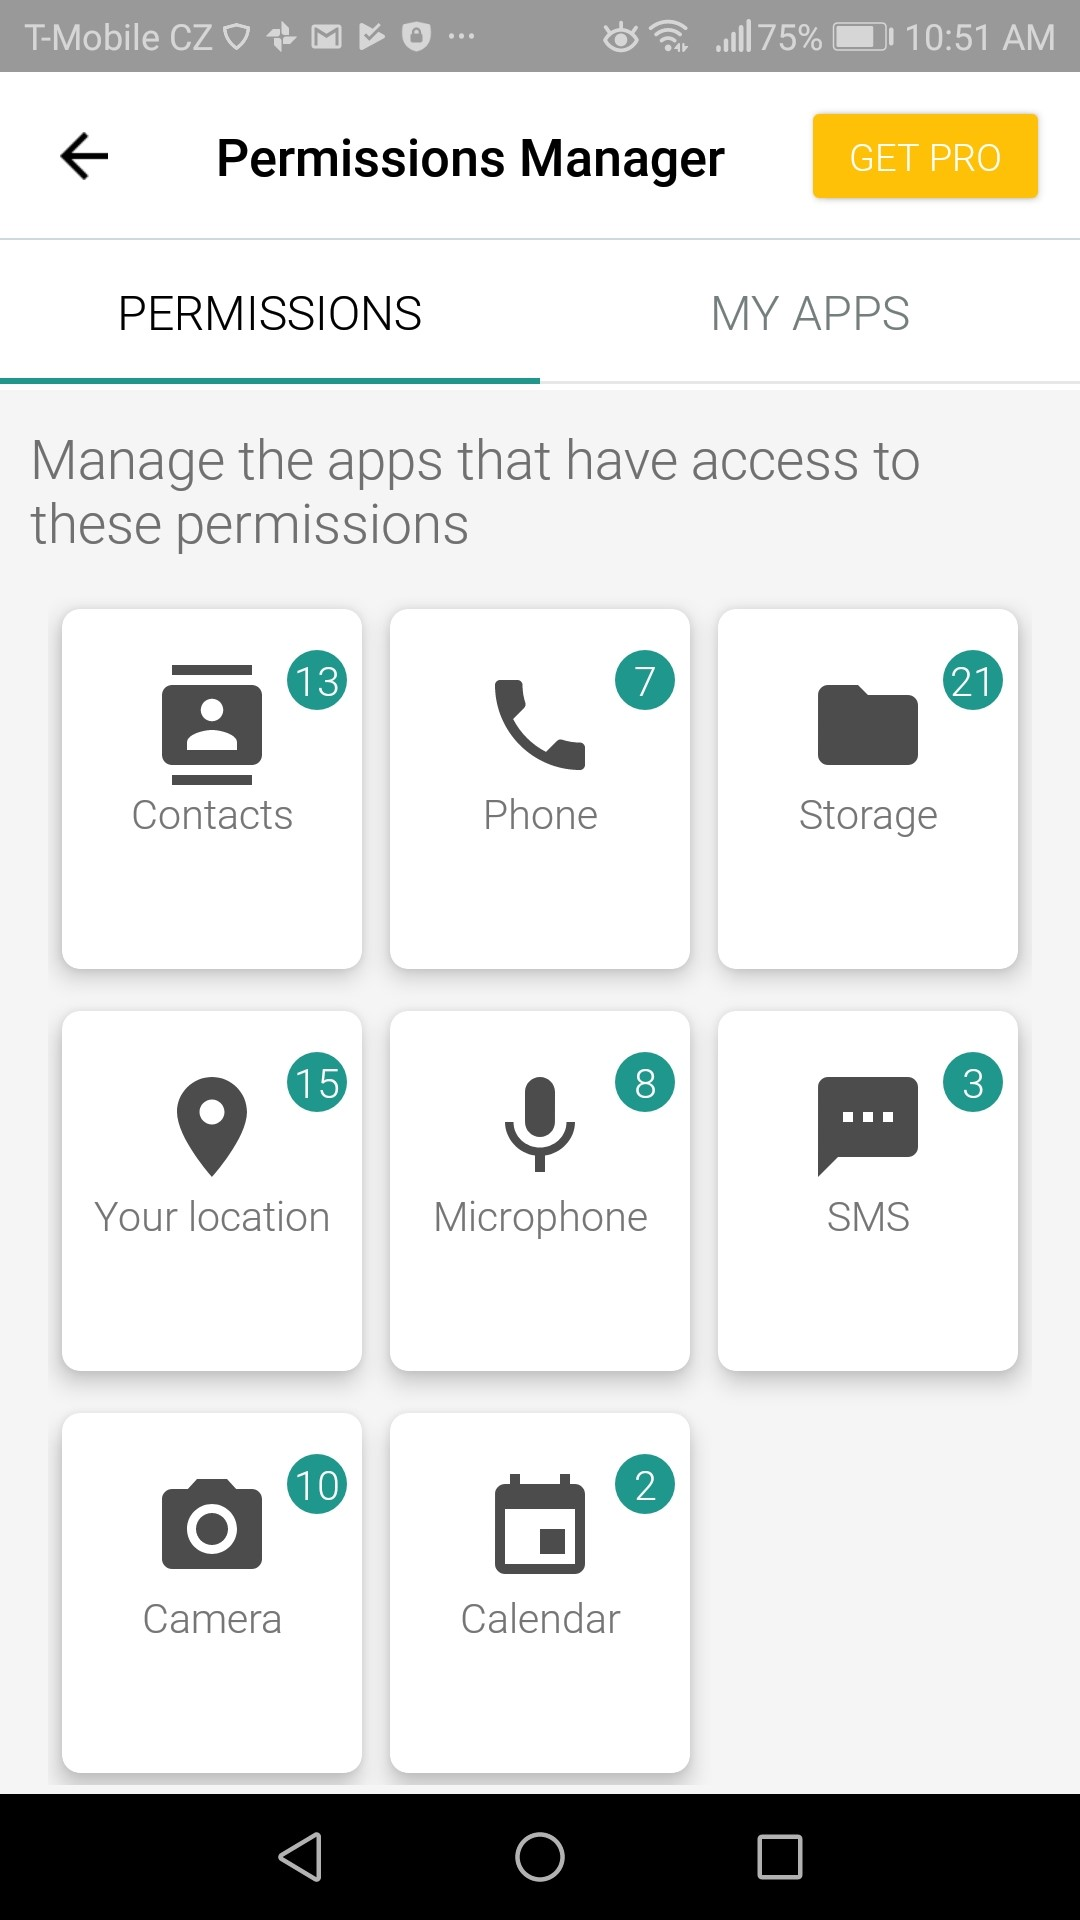 Android may be tracking and spying on your activities